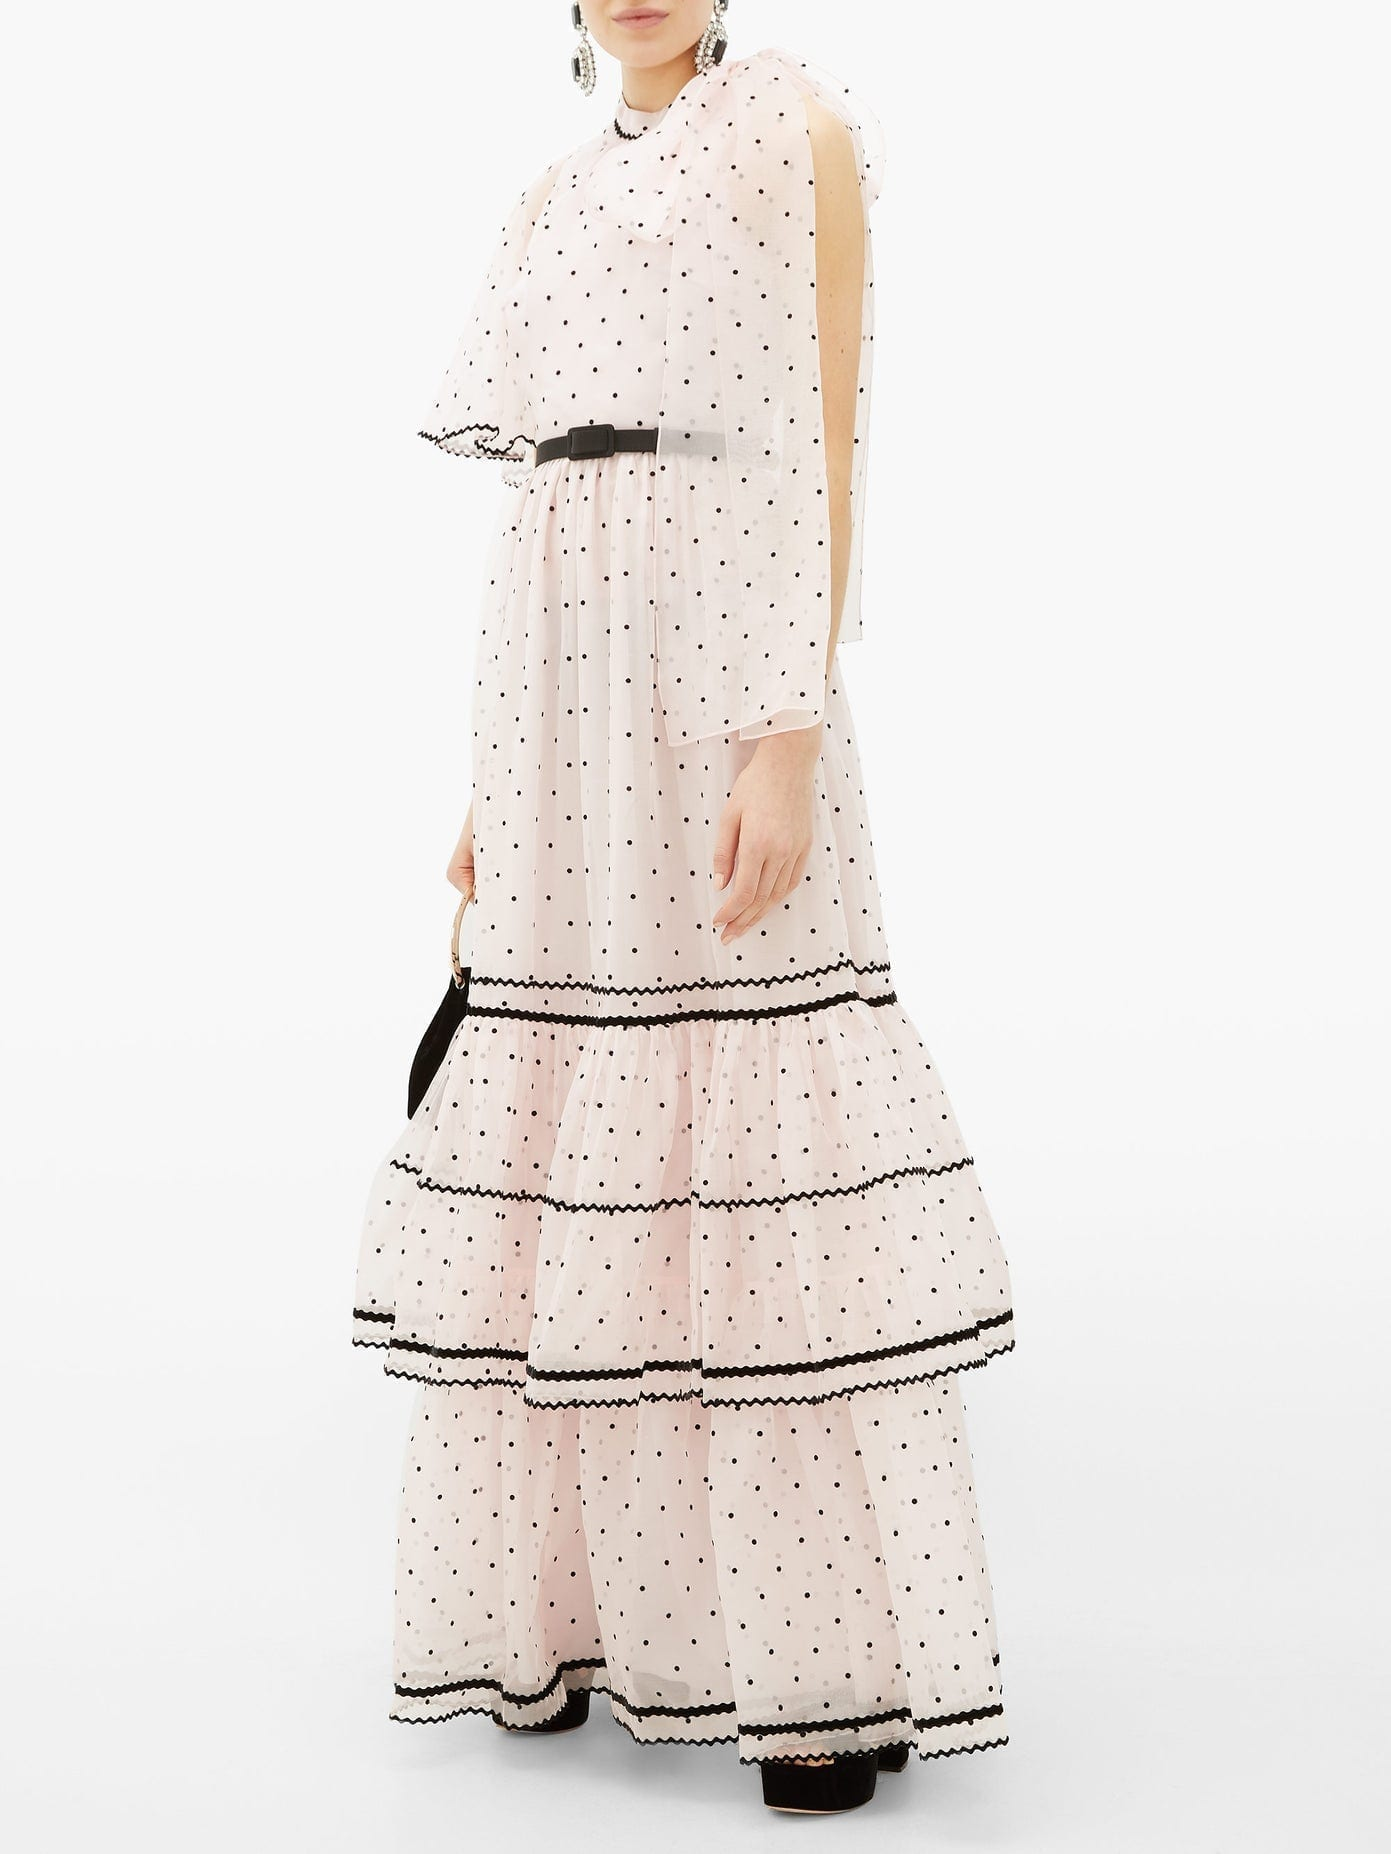 ERDEM Natalina One-shoulder Polka-dot Gown